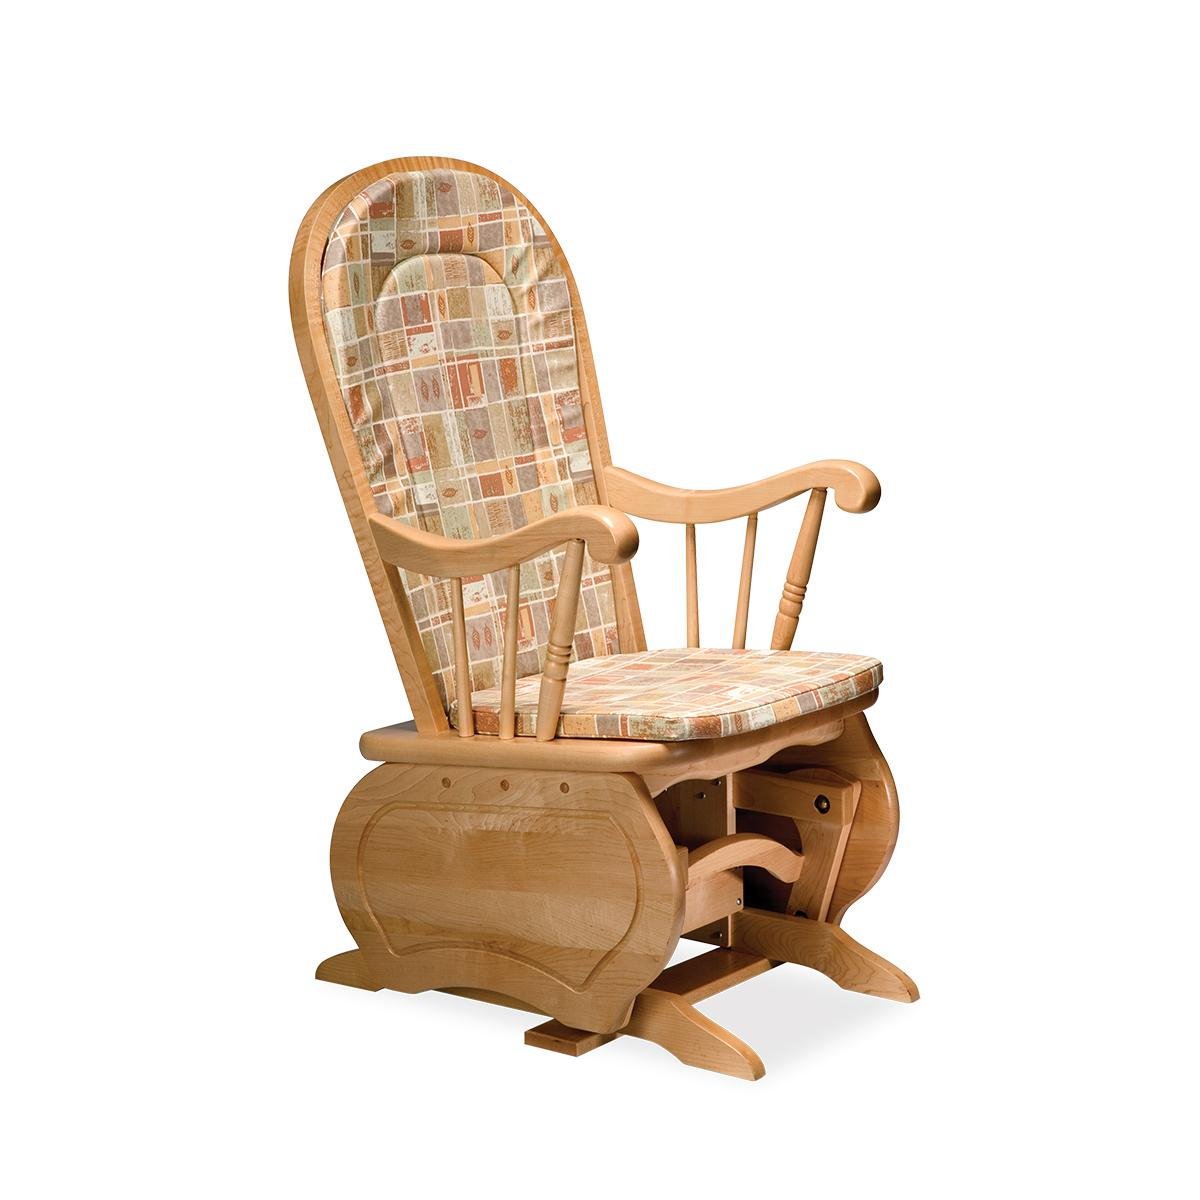 Perinatal Furniture, glider with cushions, rounded back, 3/4 view